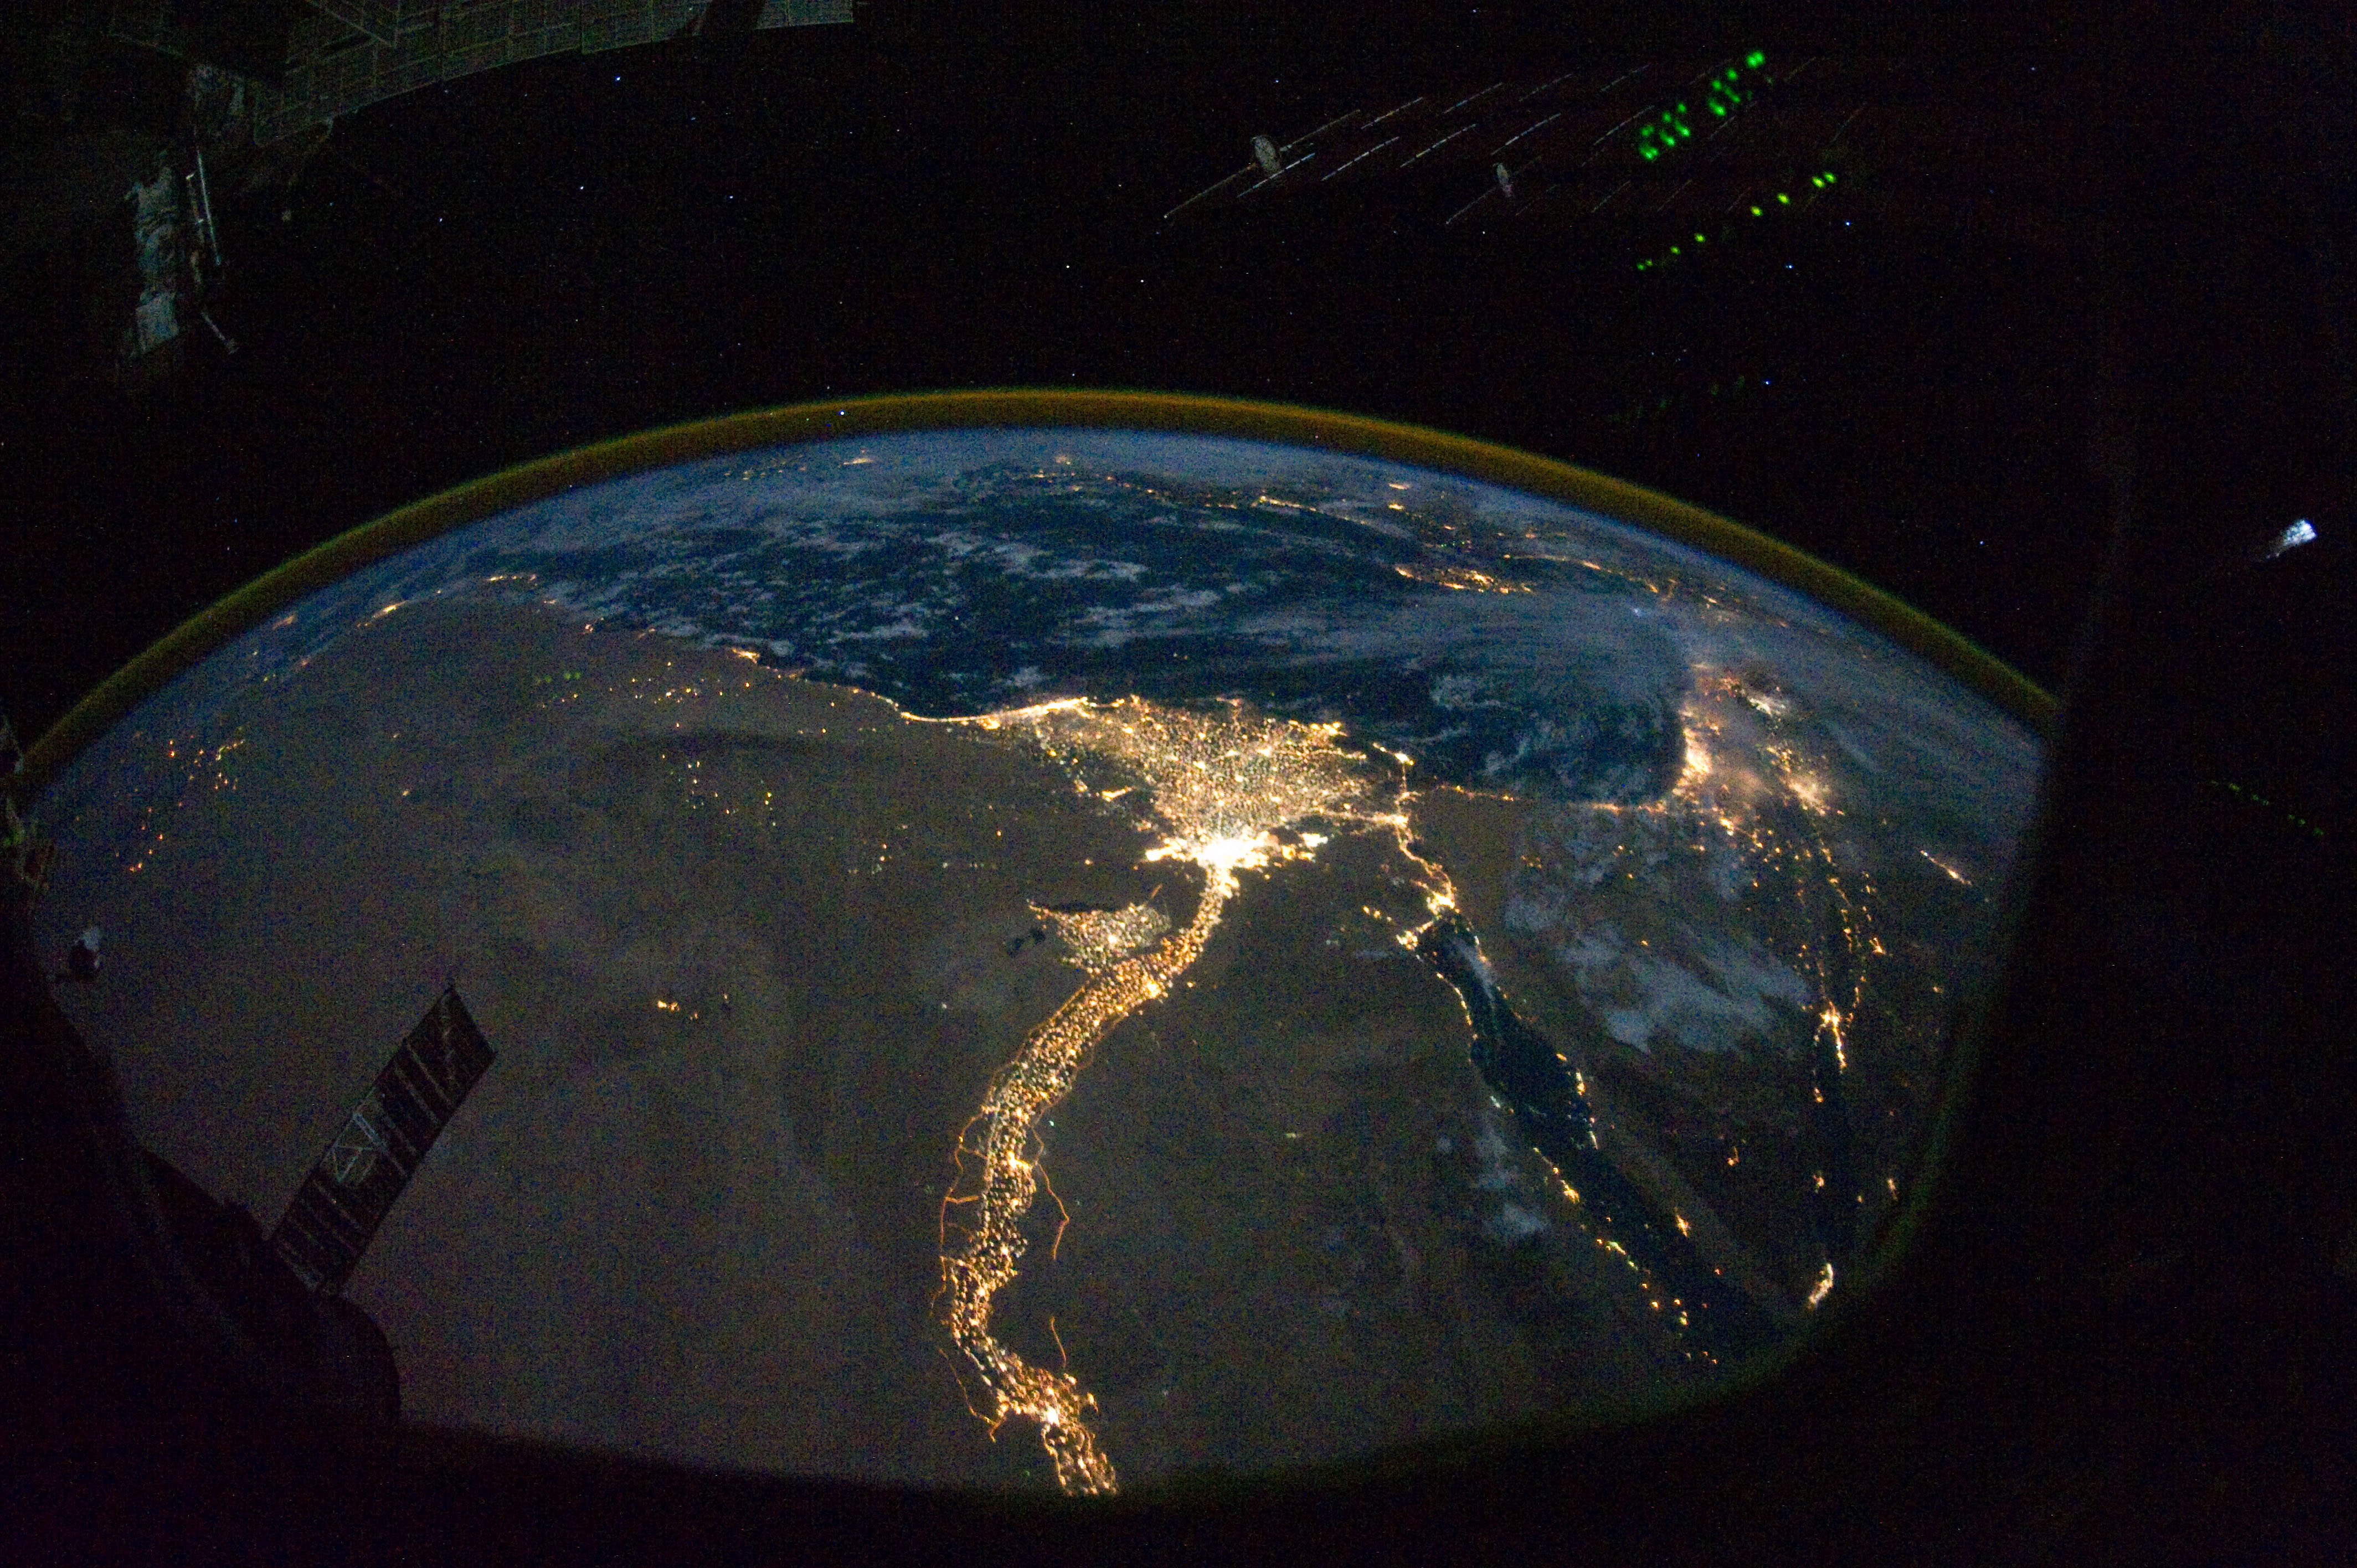 Description nile river delta at night jpg